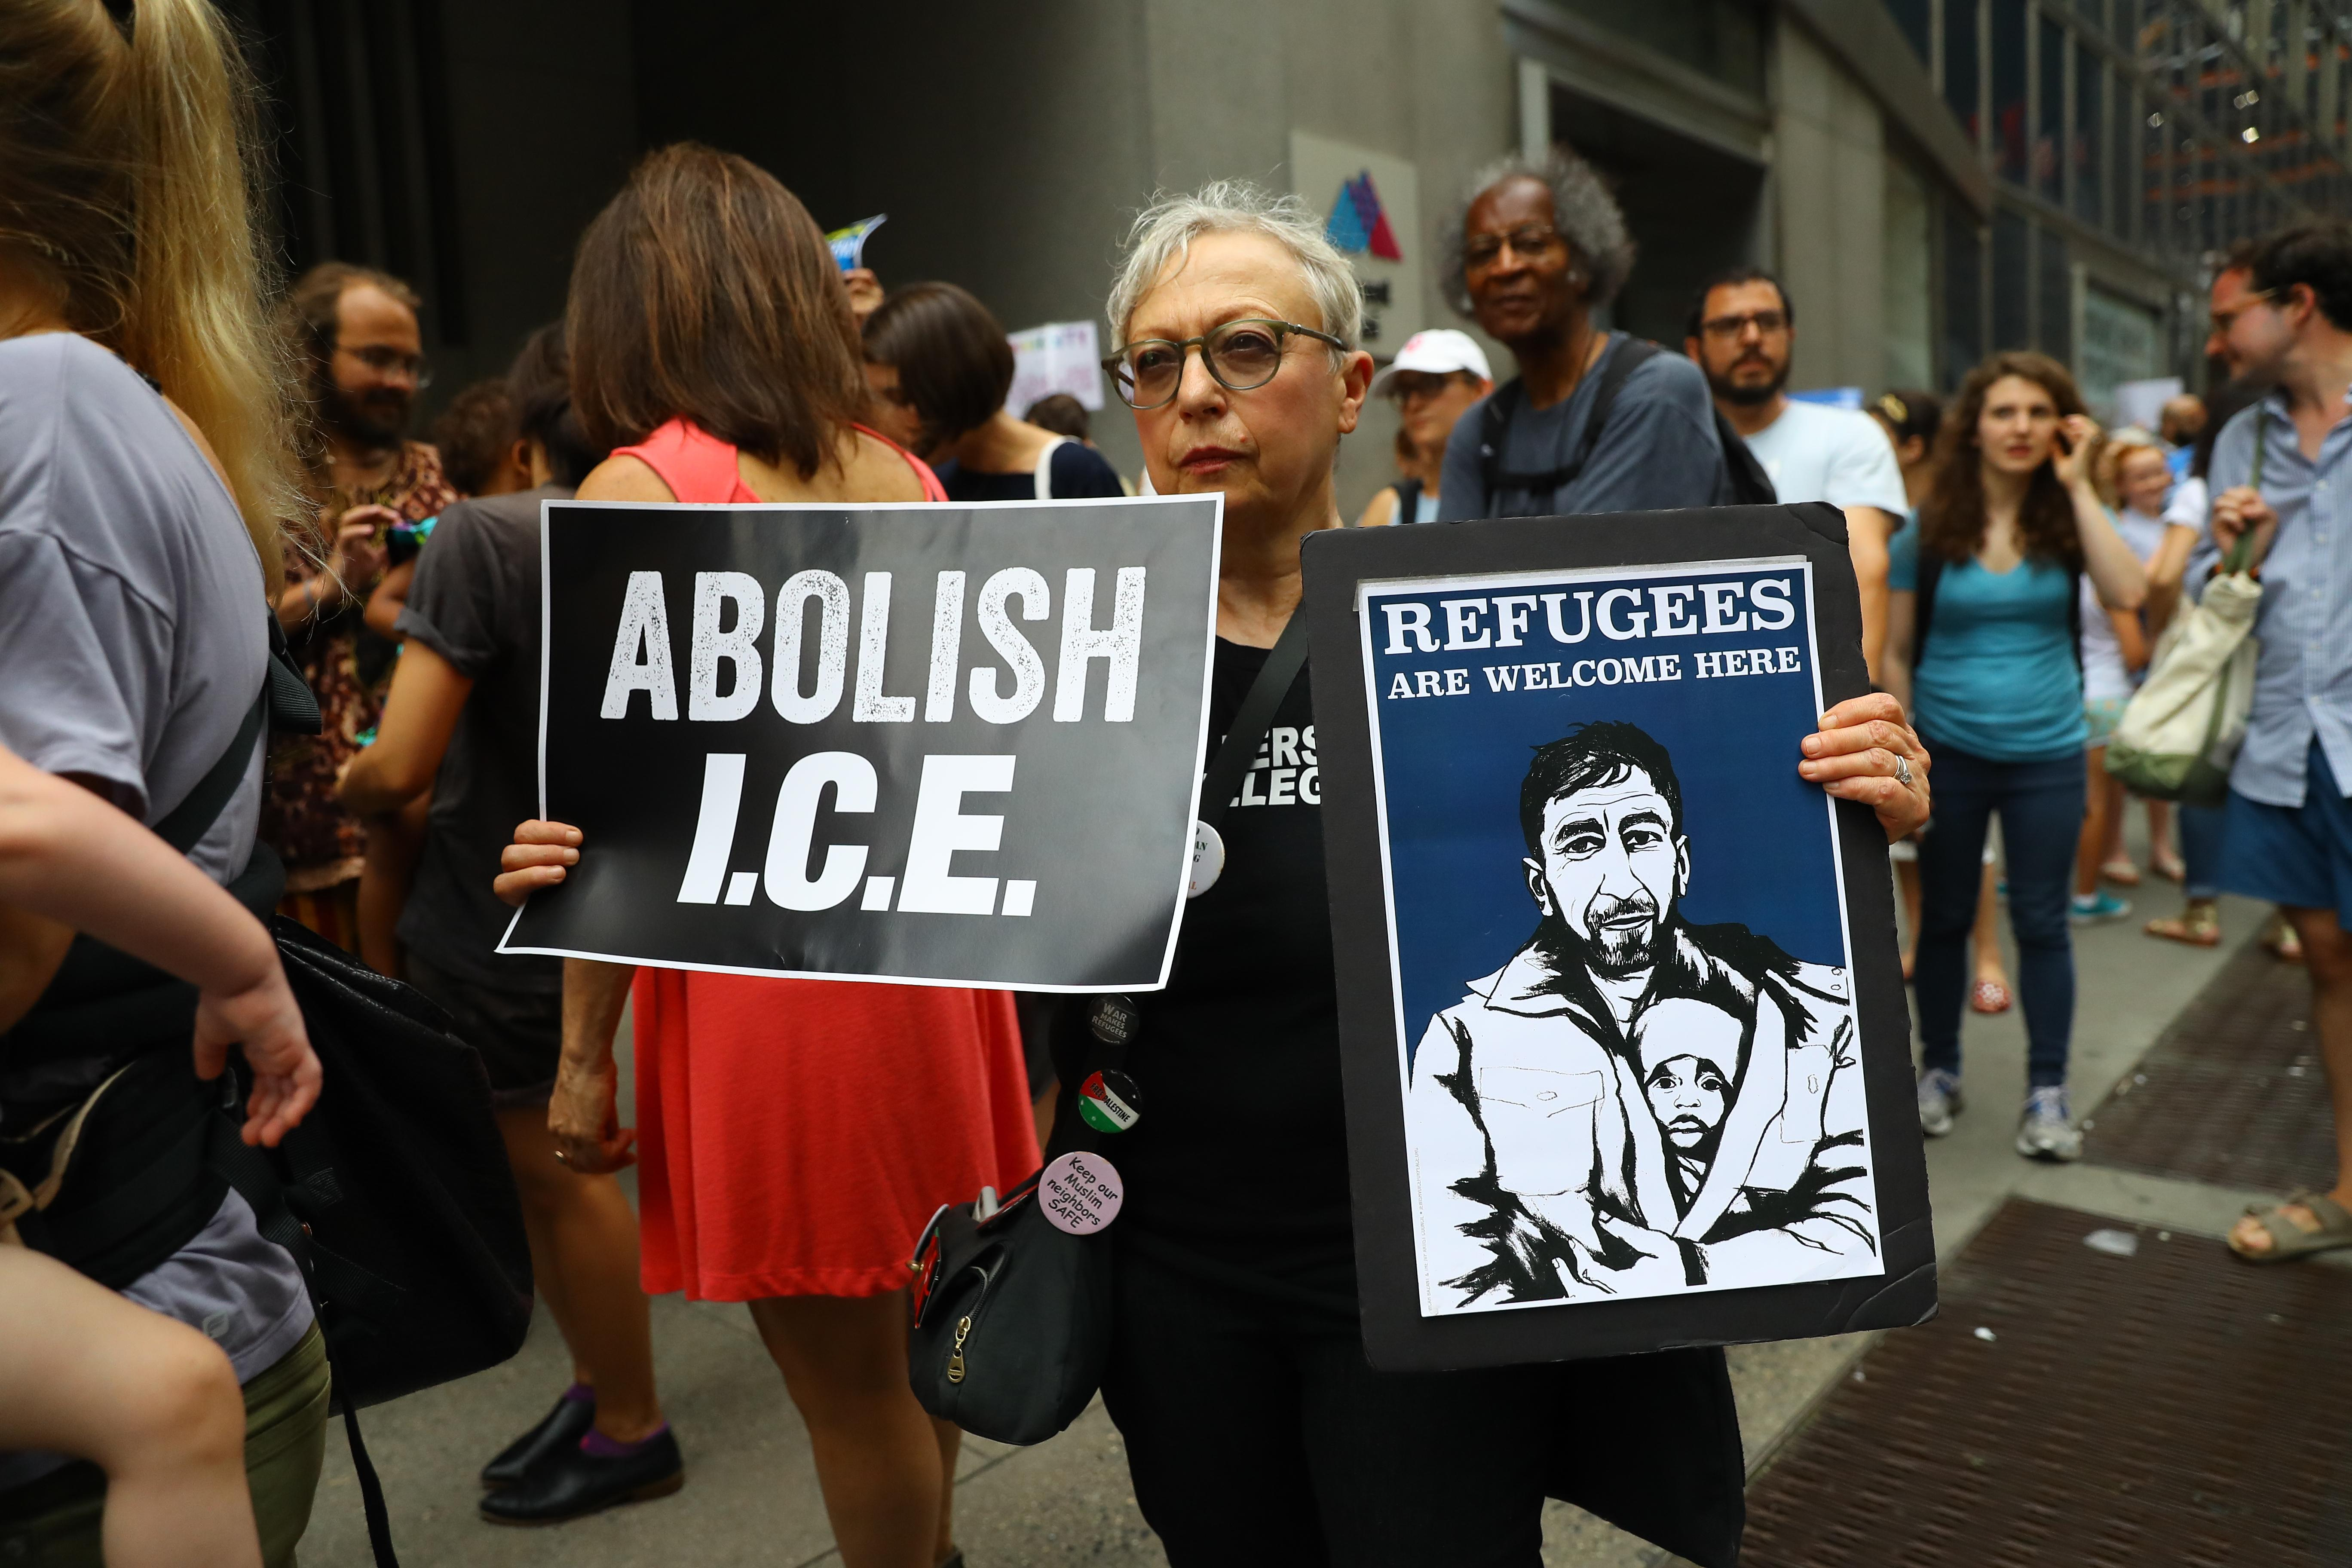 """<p>Protester Jenny Hines of Manhattan holds up signs that read to """"Abolish I.C.E."""" and """"Refugees are welcome here"""" on 42nd Street in New York City on June 20, 2018. (Photo: Gordon Donovan/Yahoo News) </p>"""